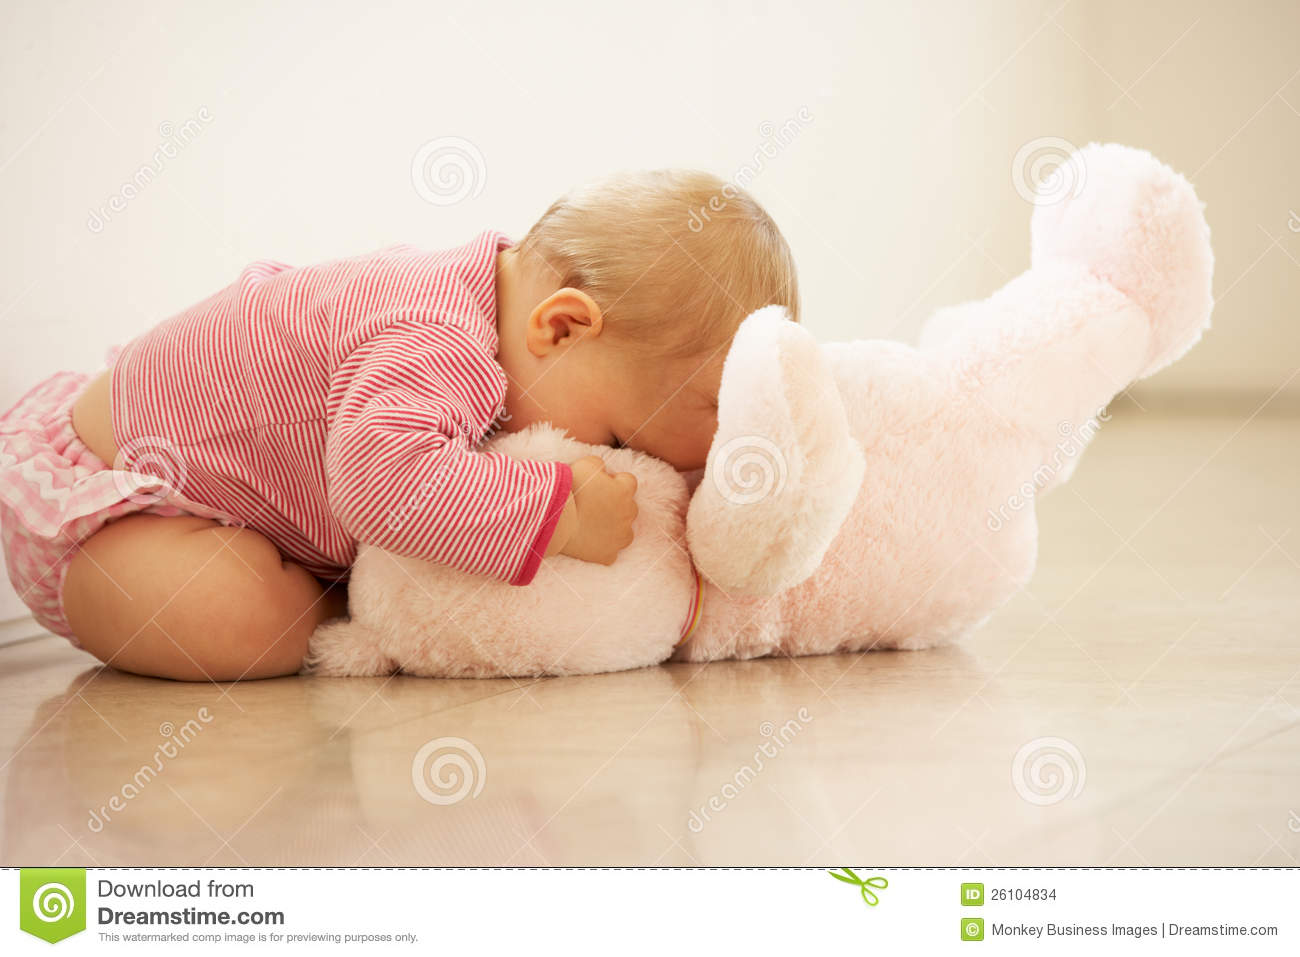 baby girl cuddling pink teddy bear at home stock photo image of cute person 26104834. Black Bedroom Furniture Sets. Home Design Ideas